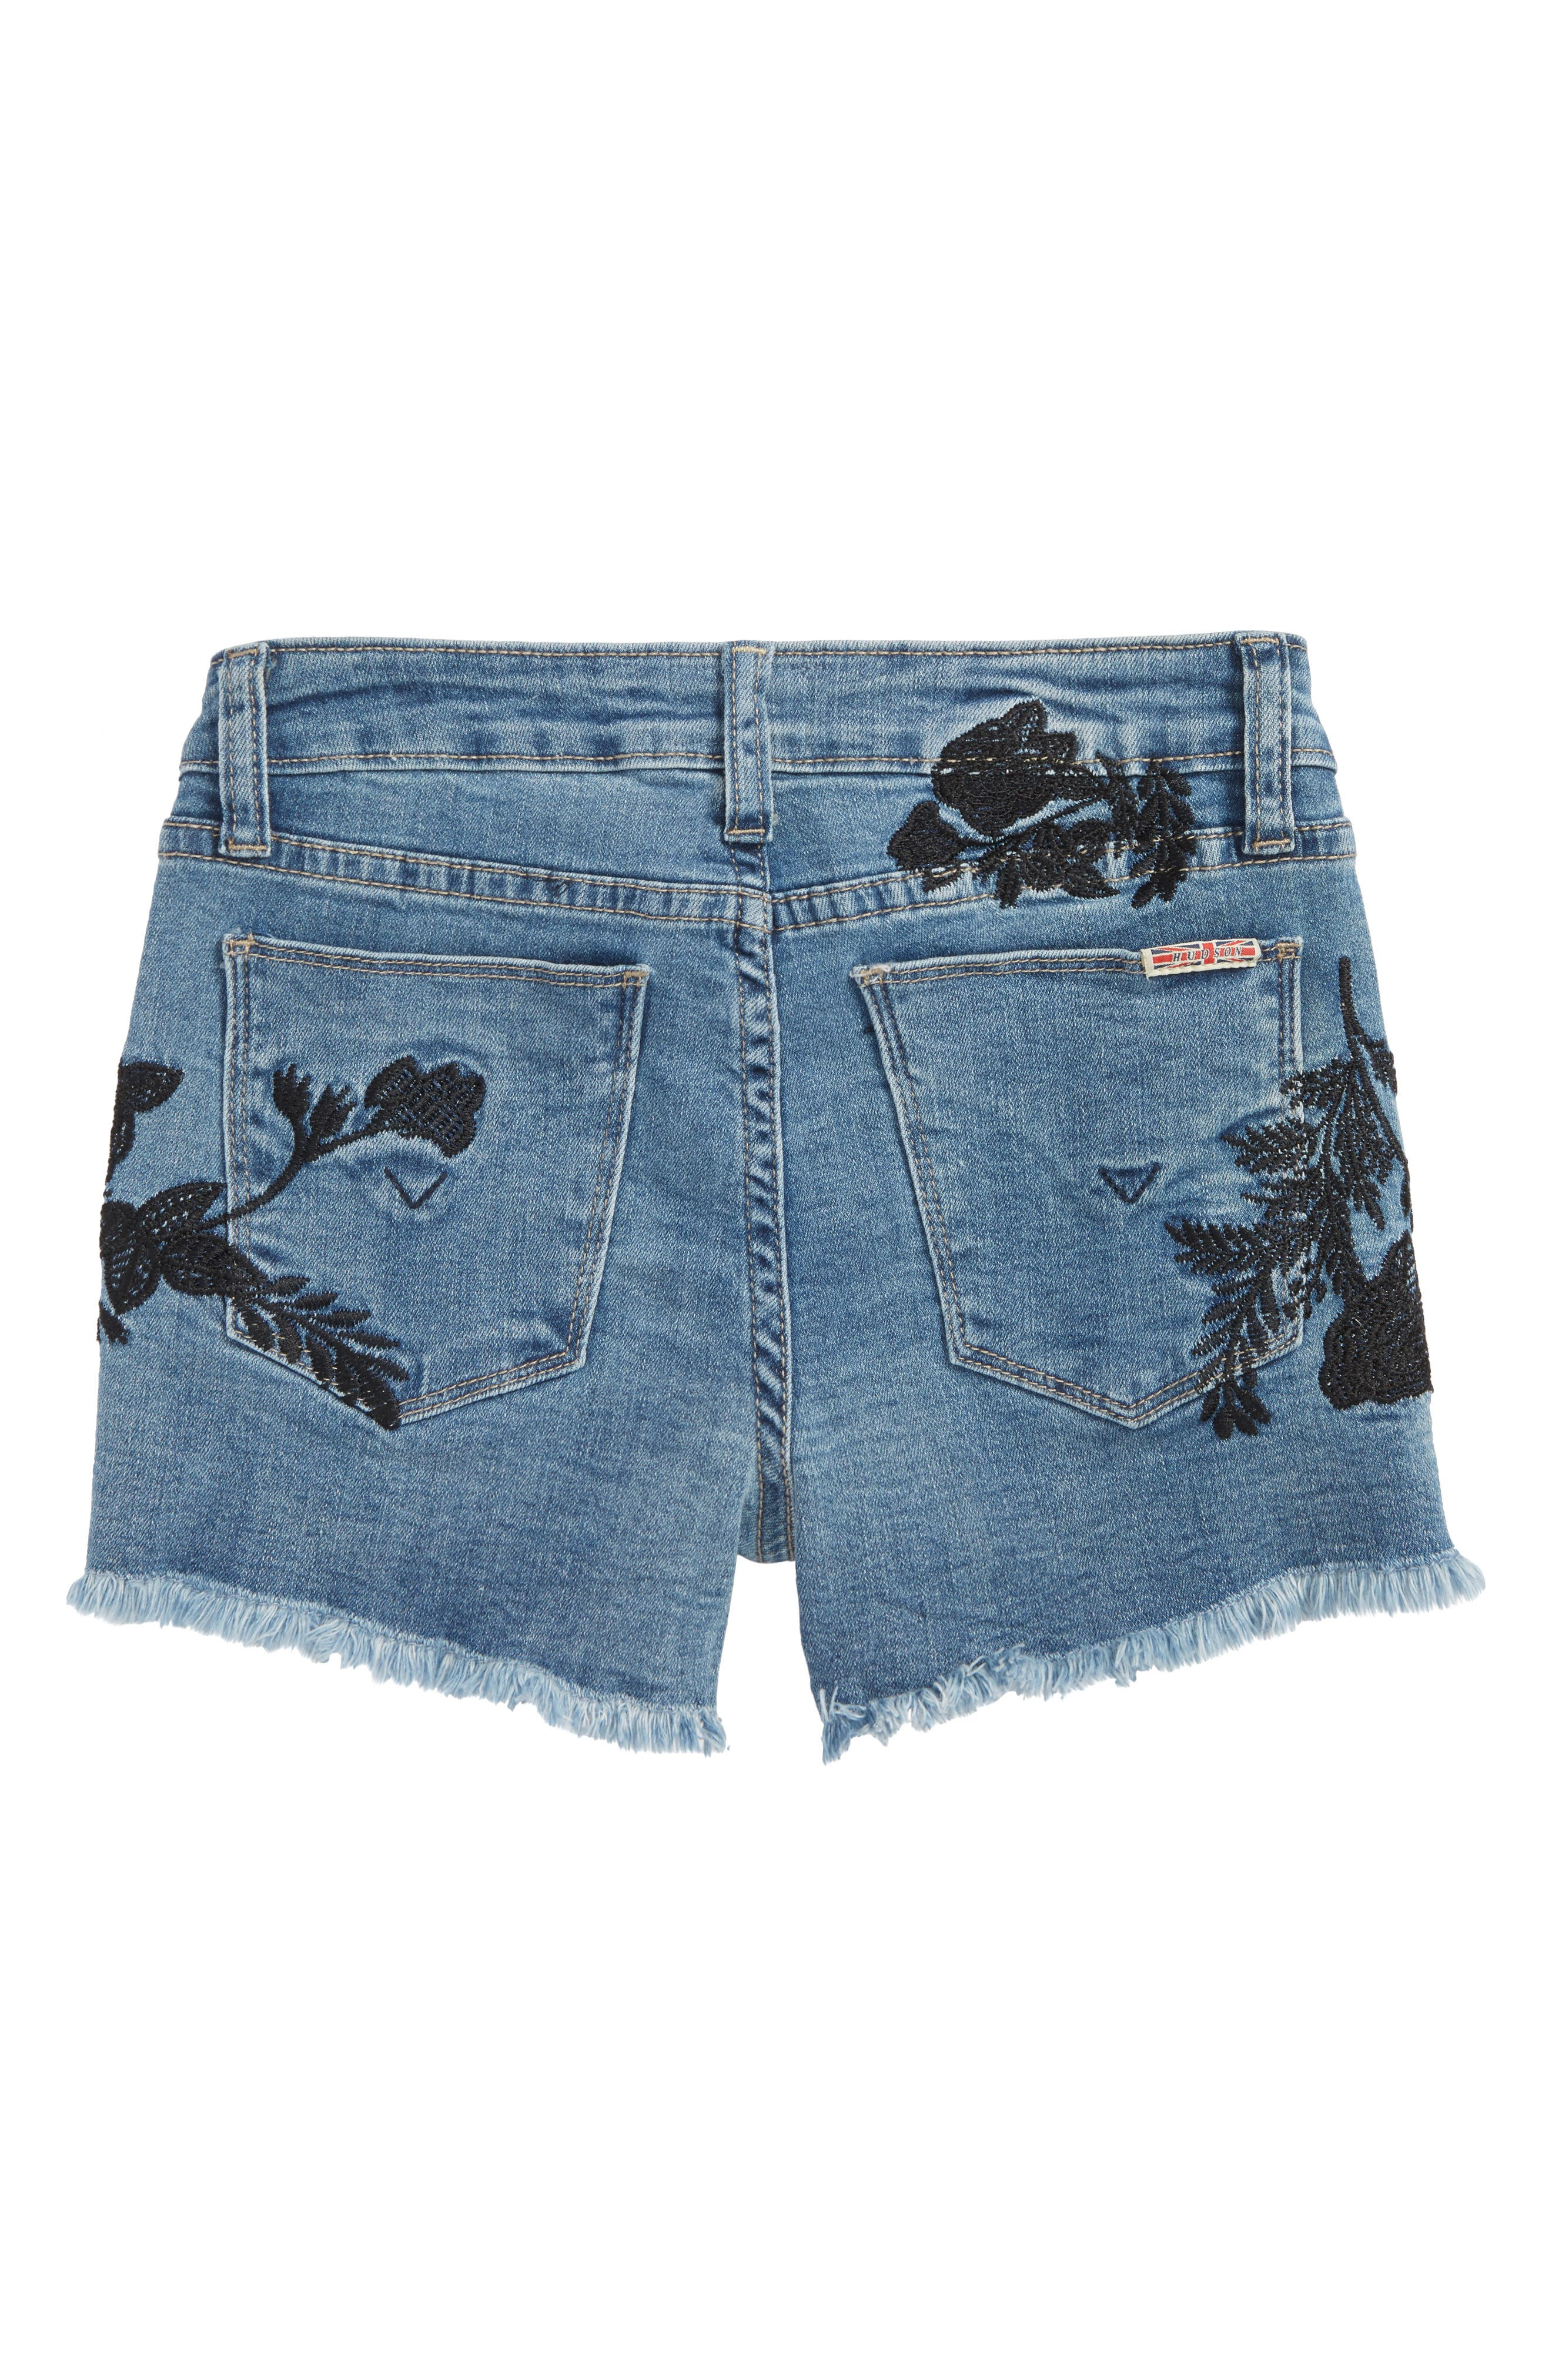 Floral Embroidery Frayed Hem Shorts,                             Alternate thumbnail 2, color,                             400